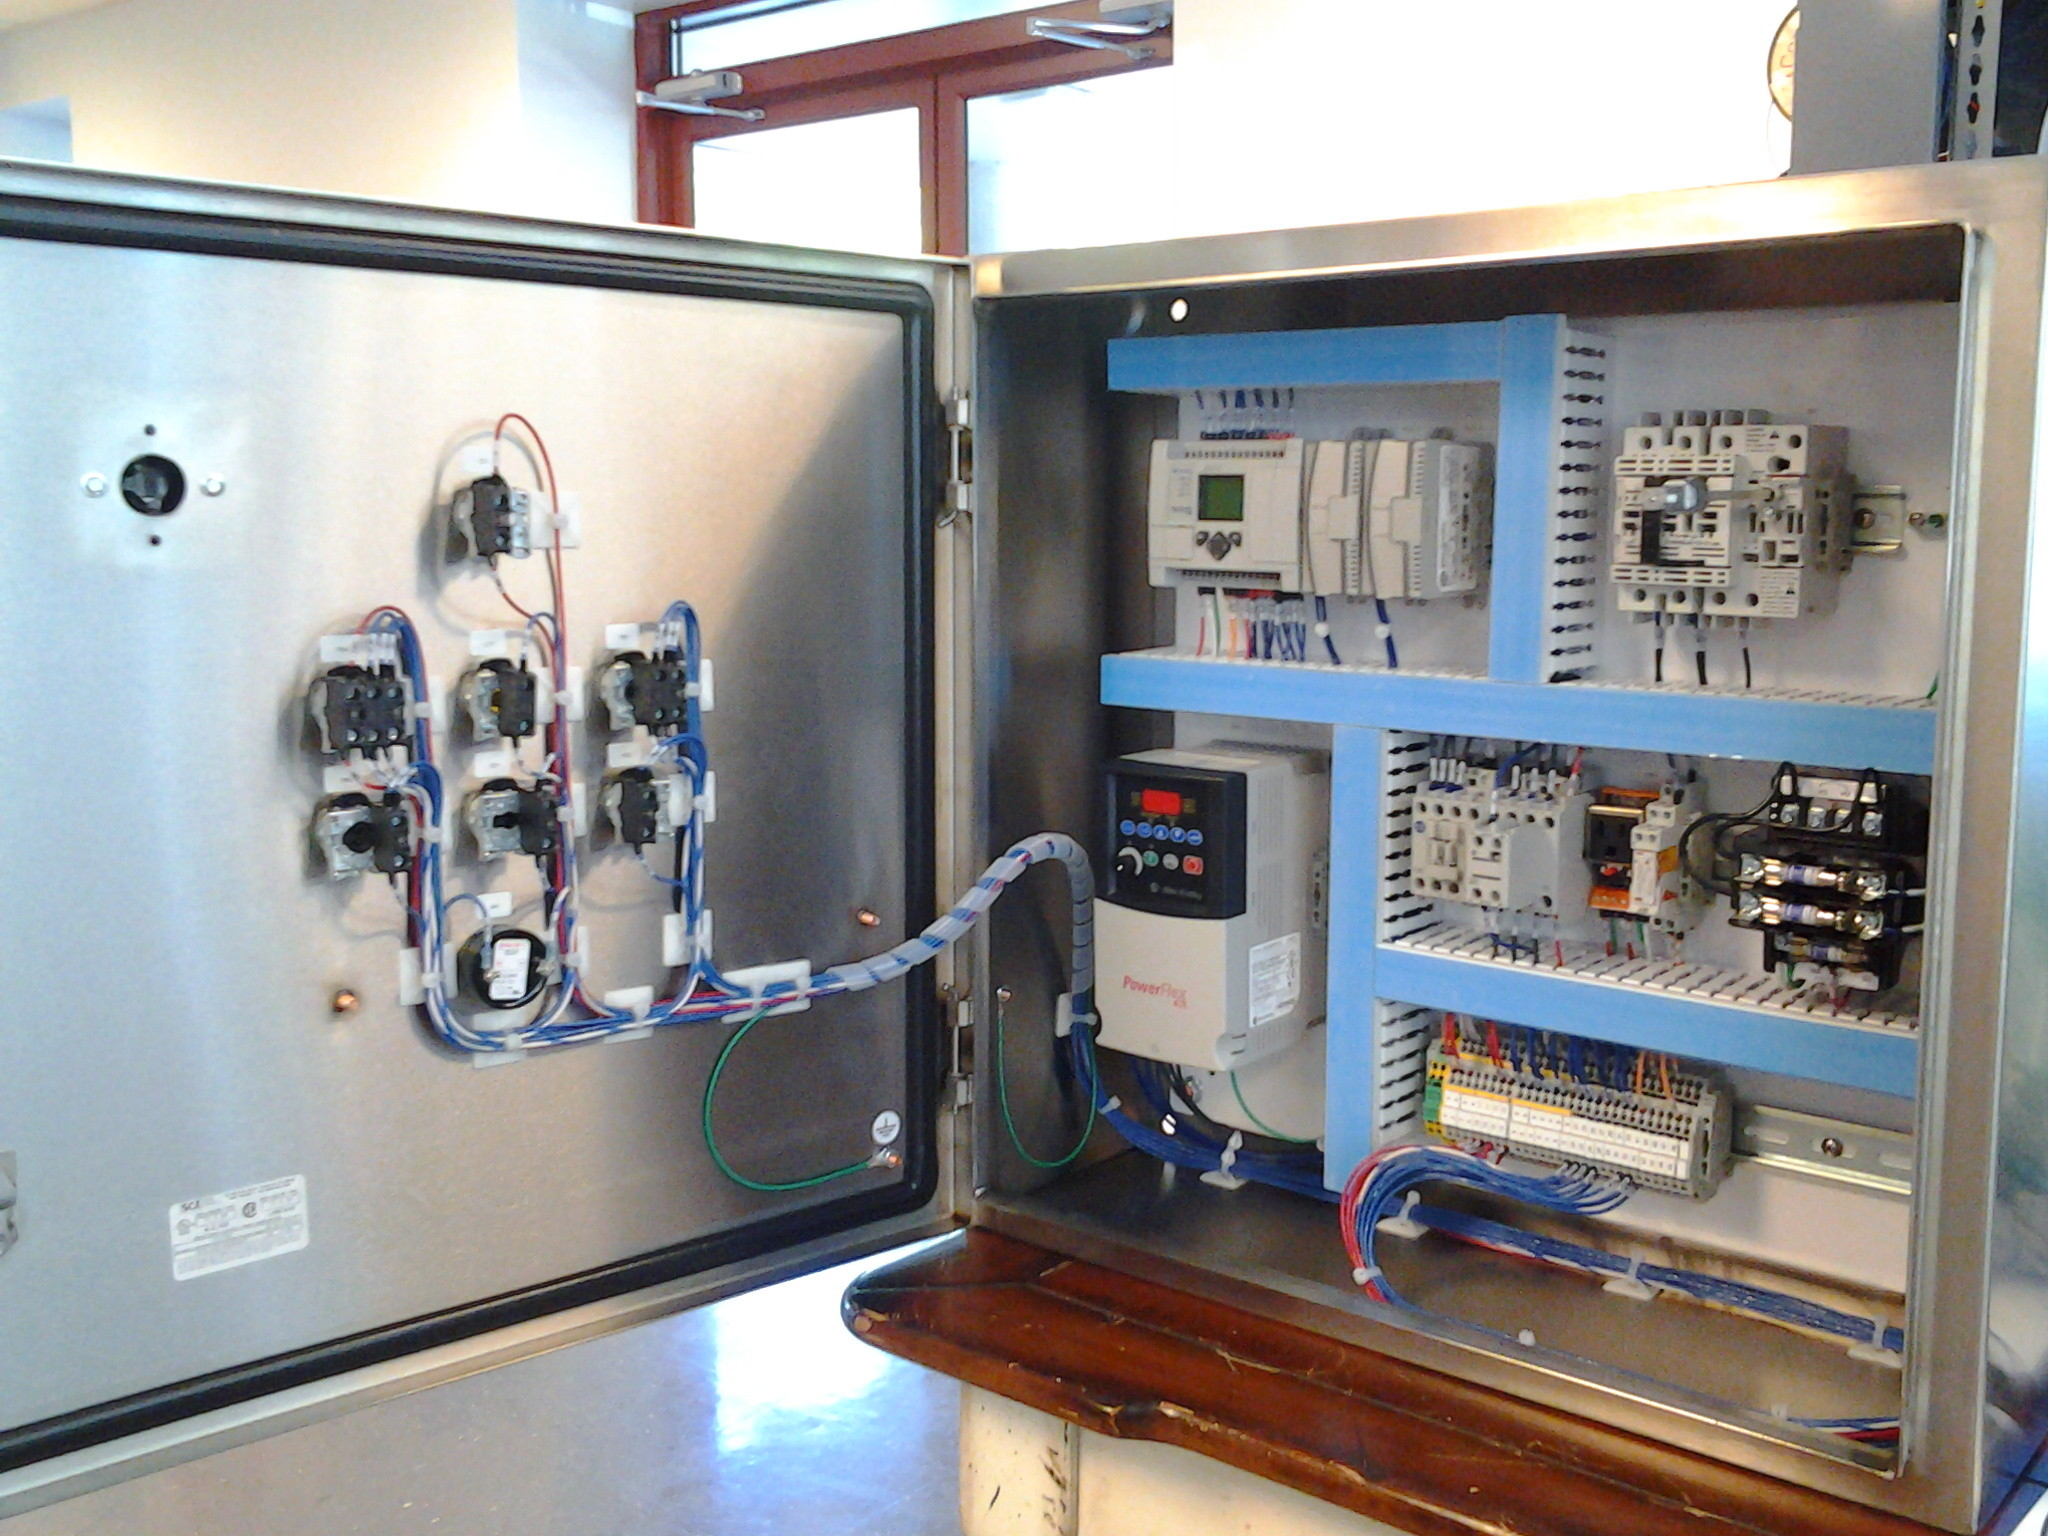 E besides Background Electrical Control Panels as well P further Bms Control Panels moreover Panel External. on electrical control panel design